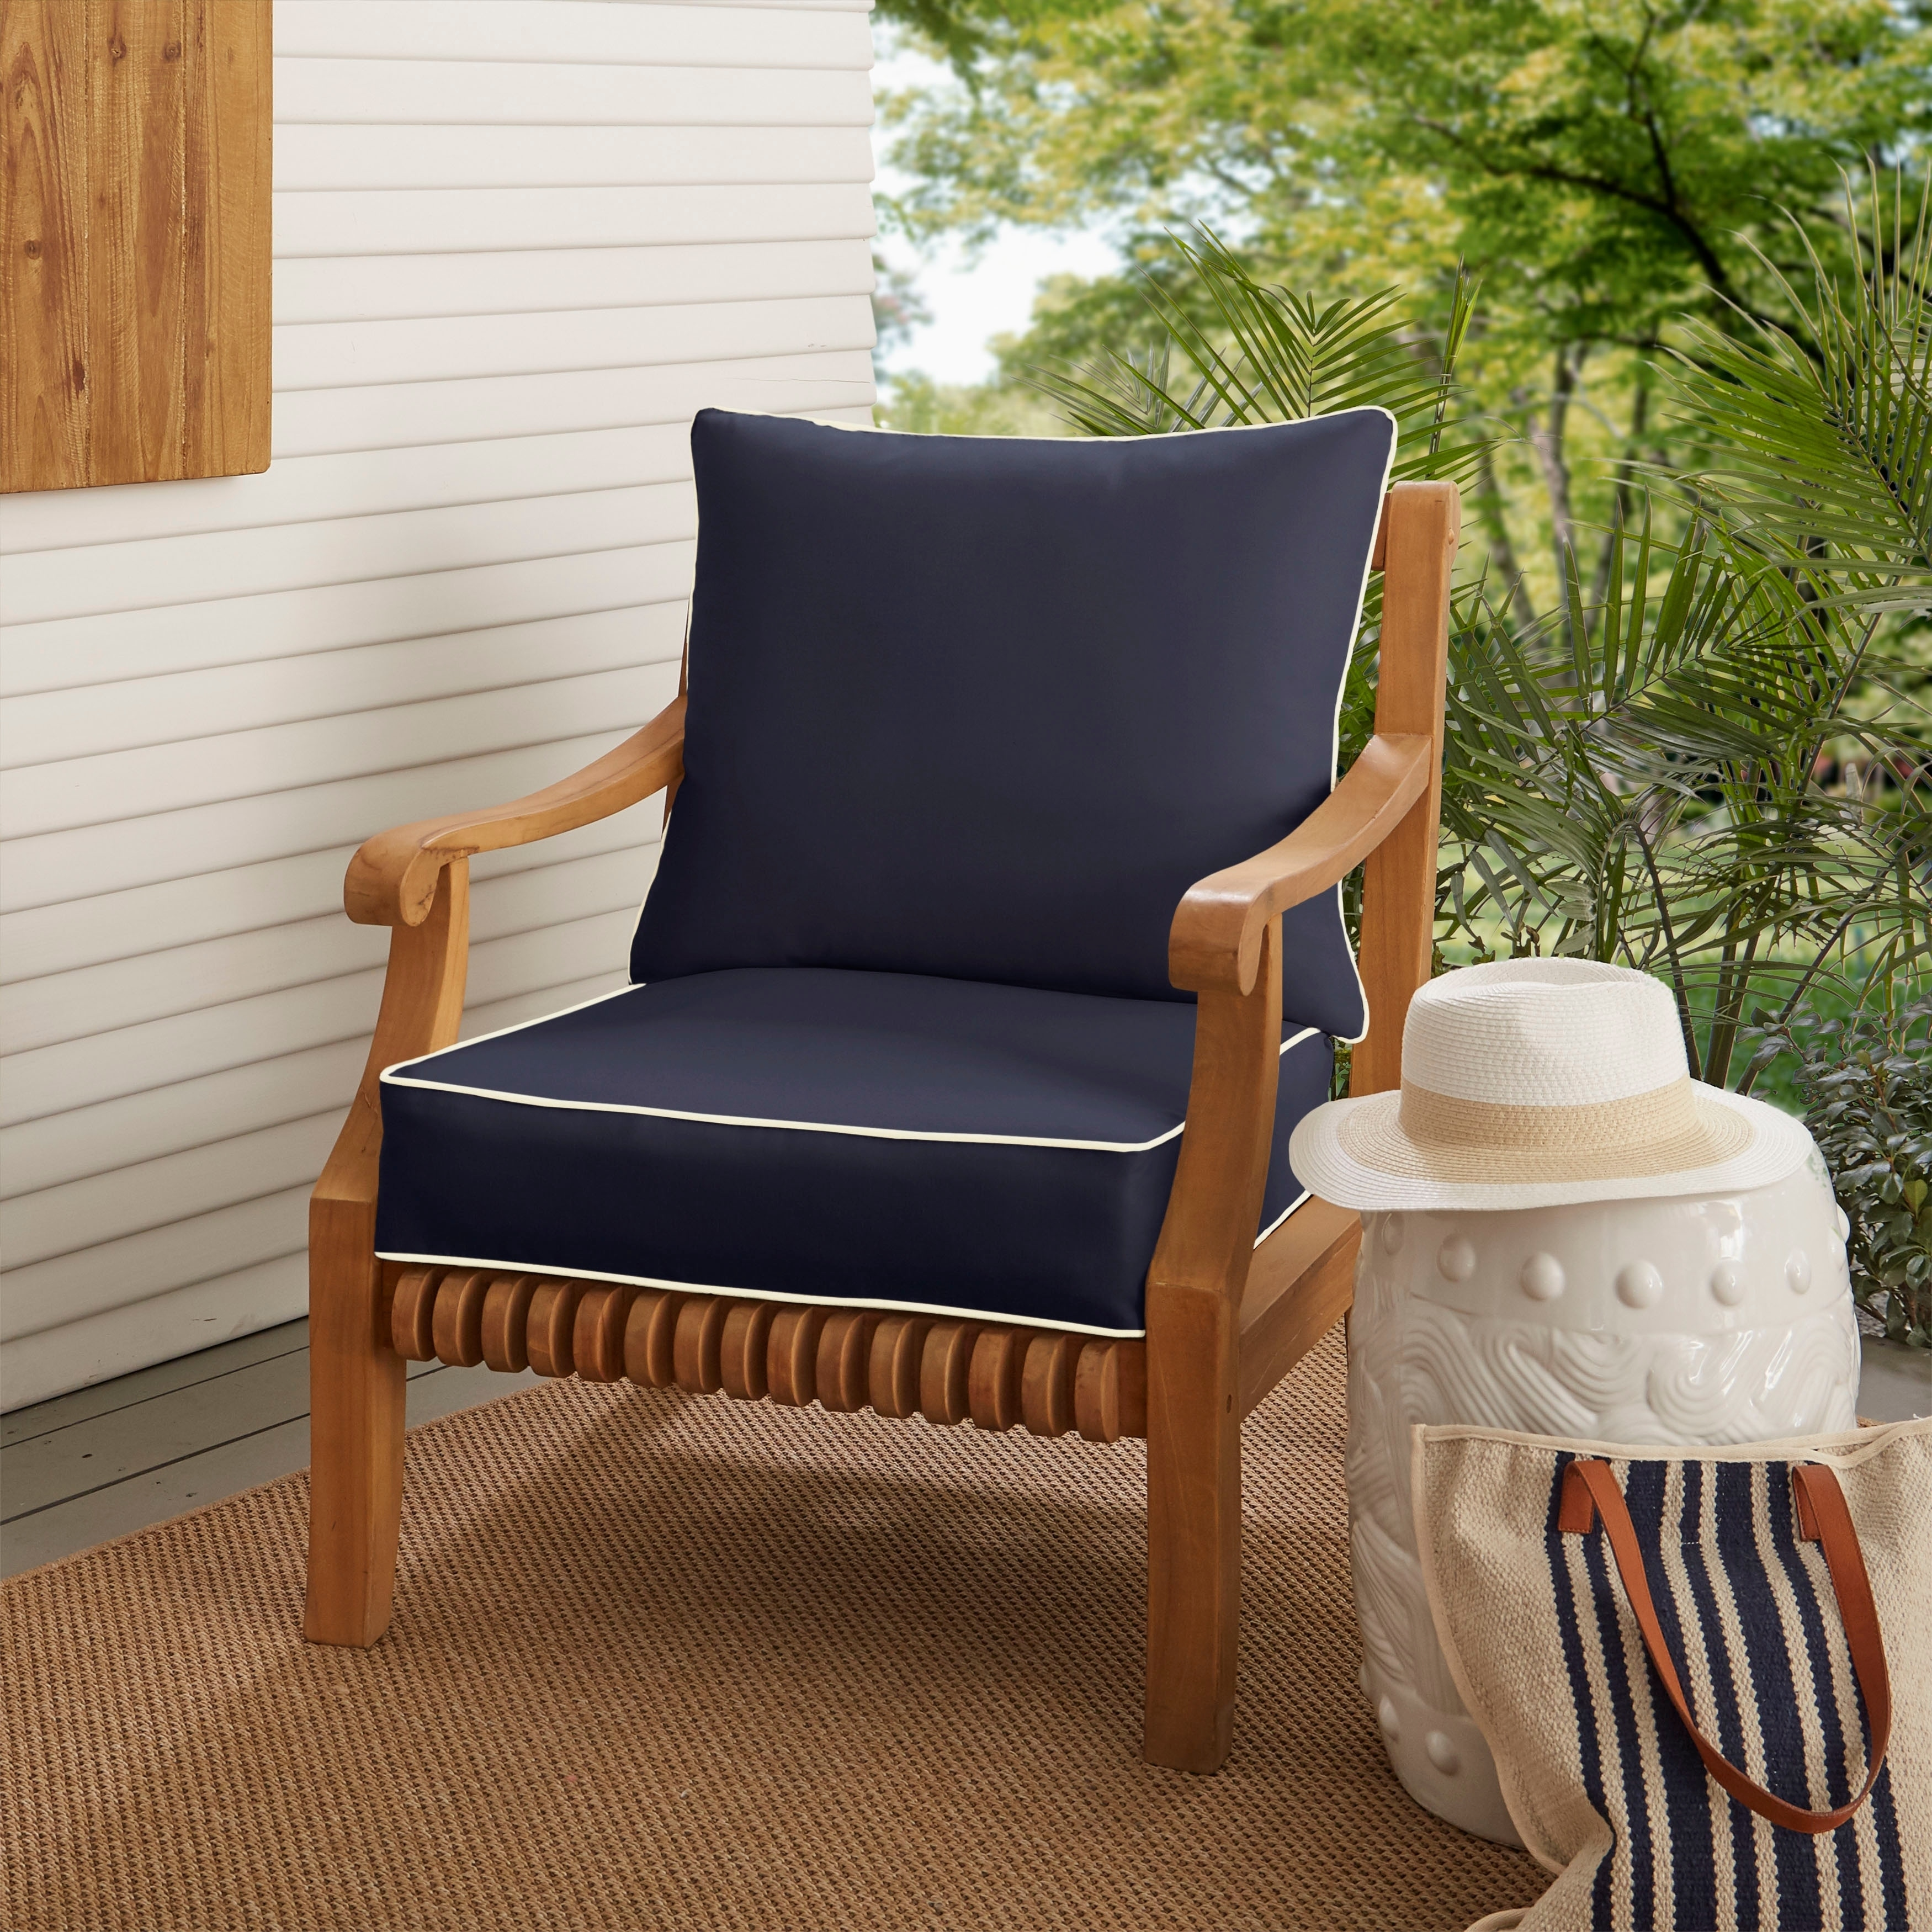 Shop Sunbrella Navy With Ivory Indoor Outdoor Chair Cushion And